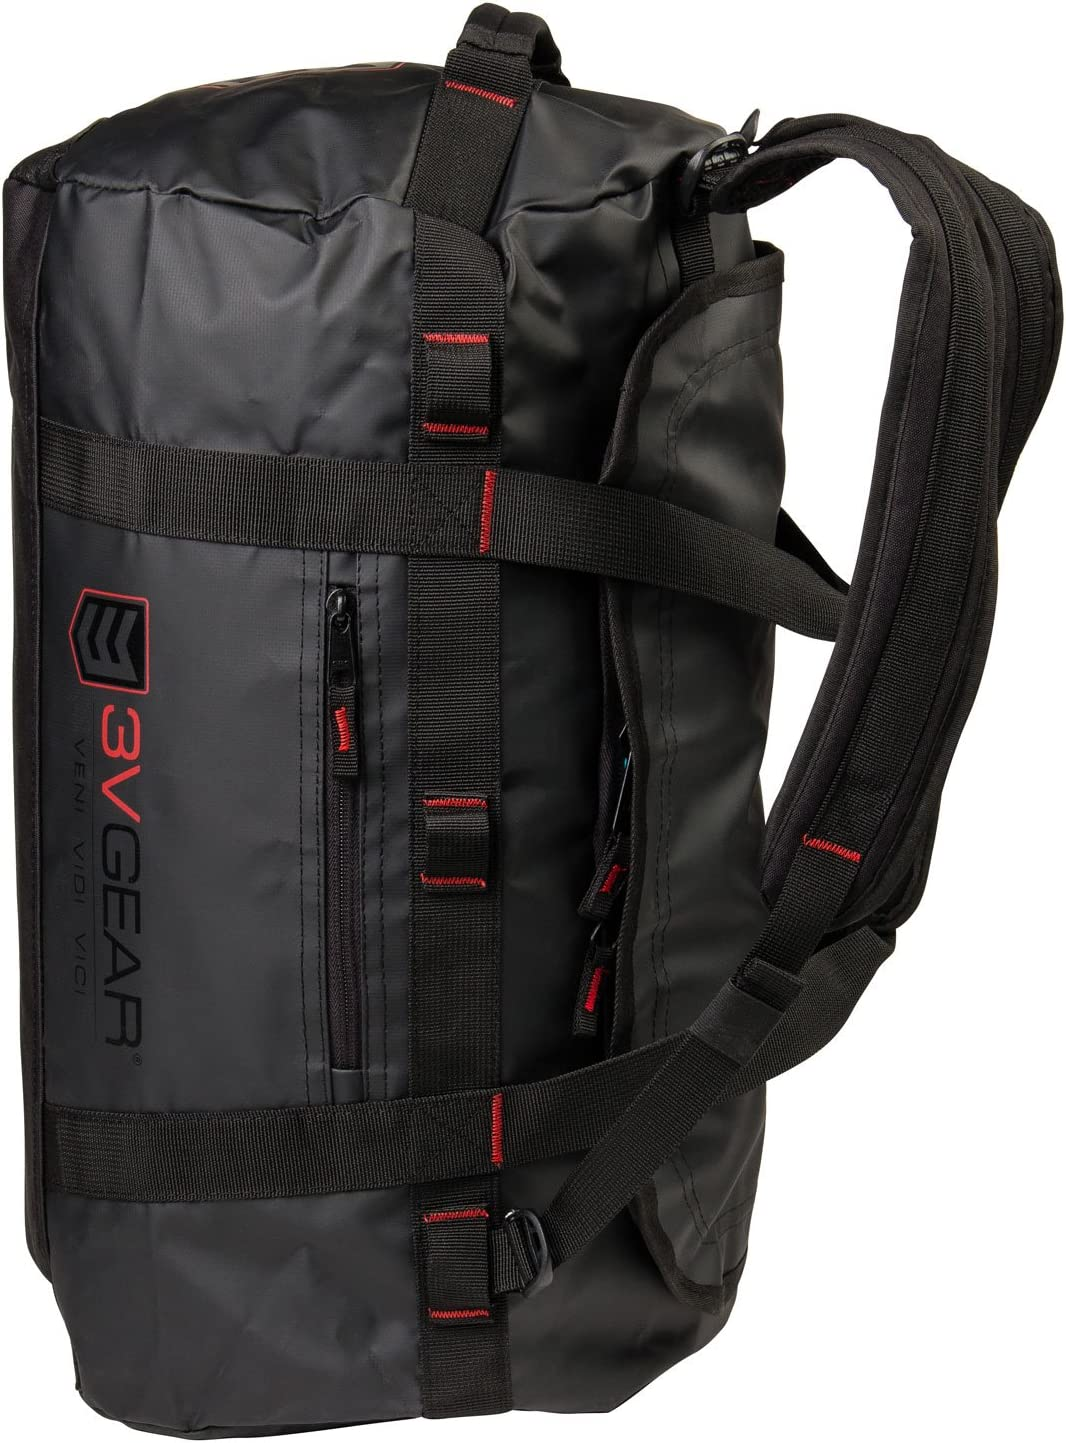 3V Gear Smuggler Adventure Duffel Bag - 45 Liters